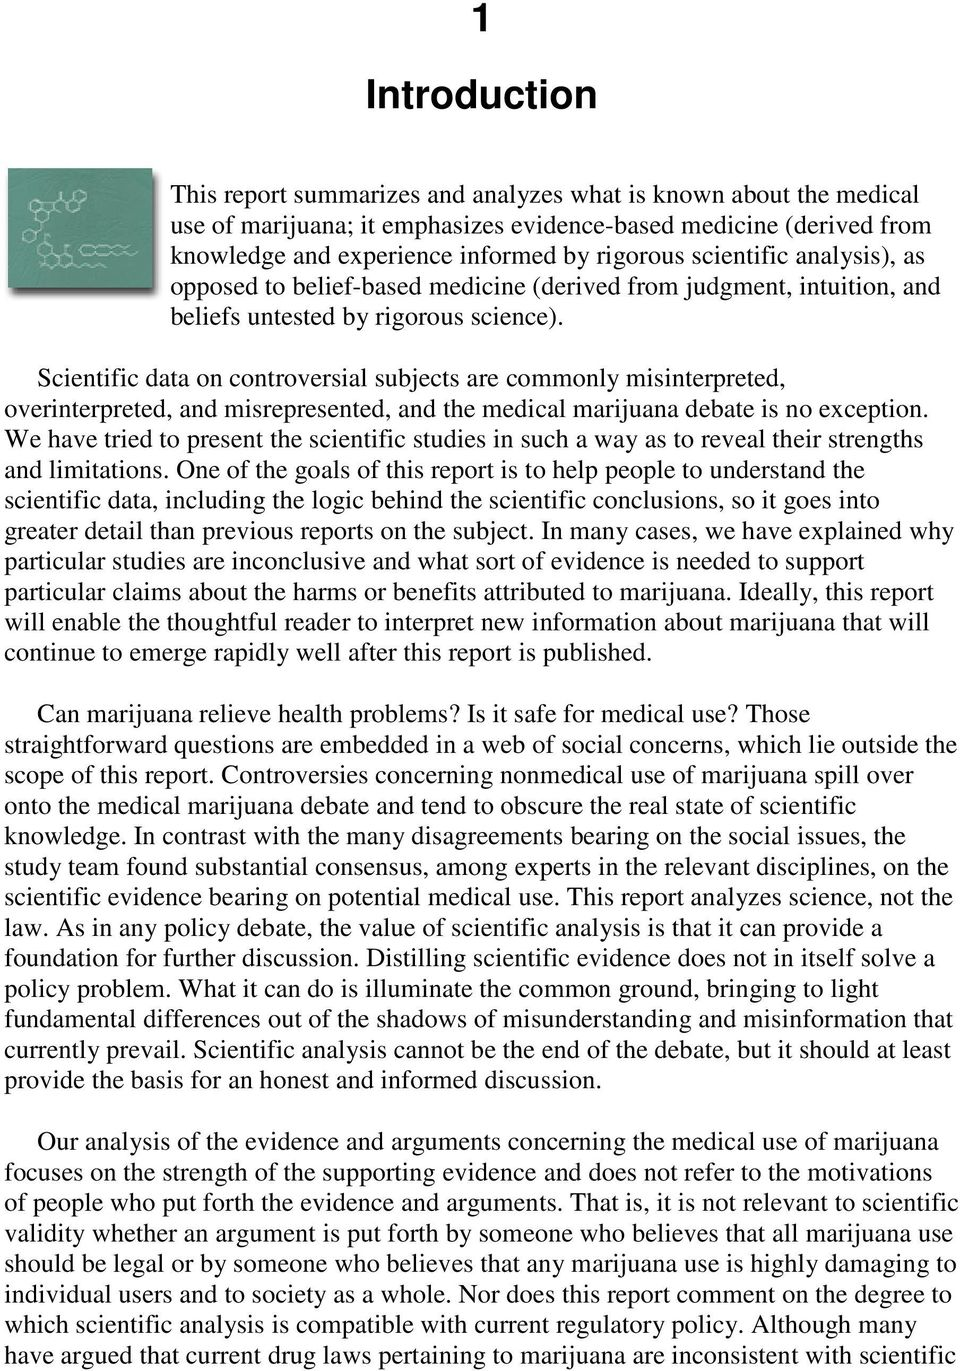 Scientific data on controversial subjects are commonly misinterpreted, overinterpreted, and misrepresented, and the medical marijuana debate is no exception.